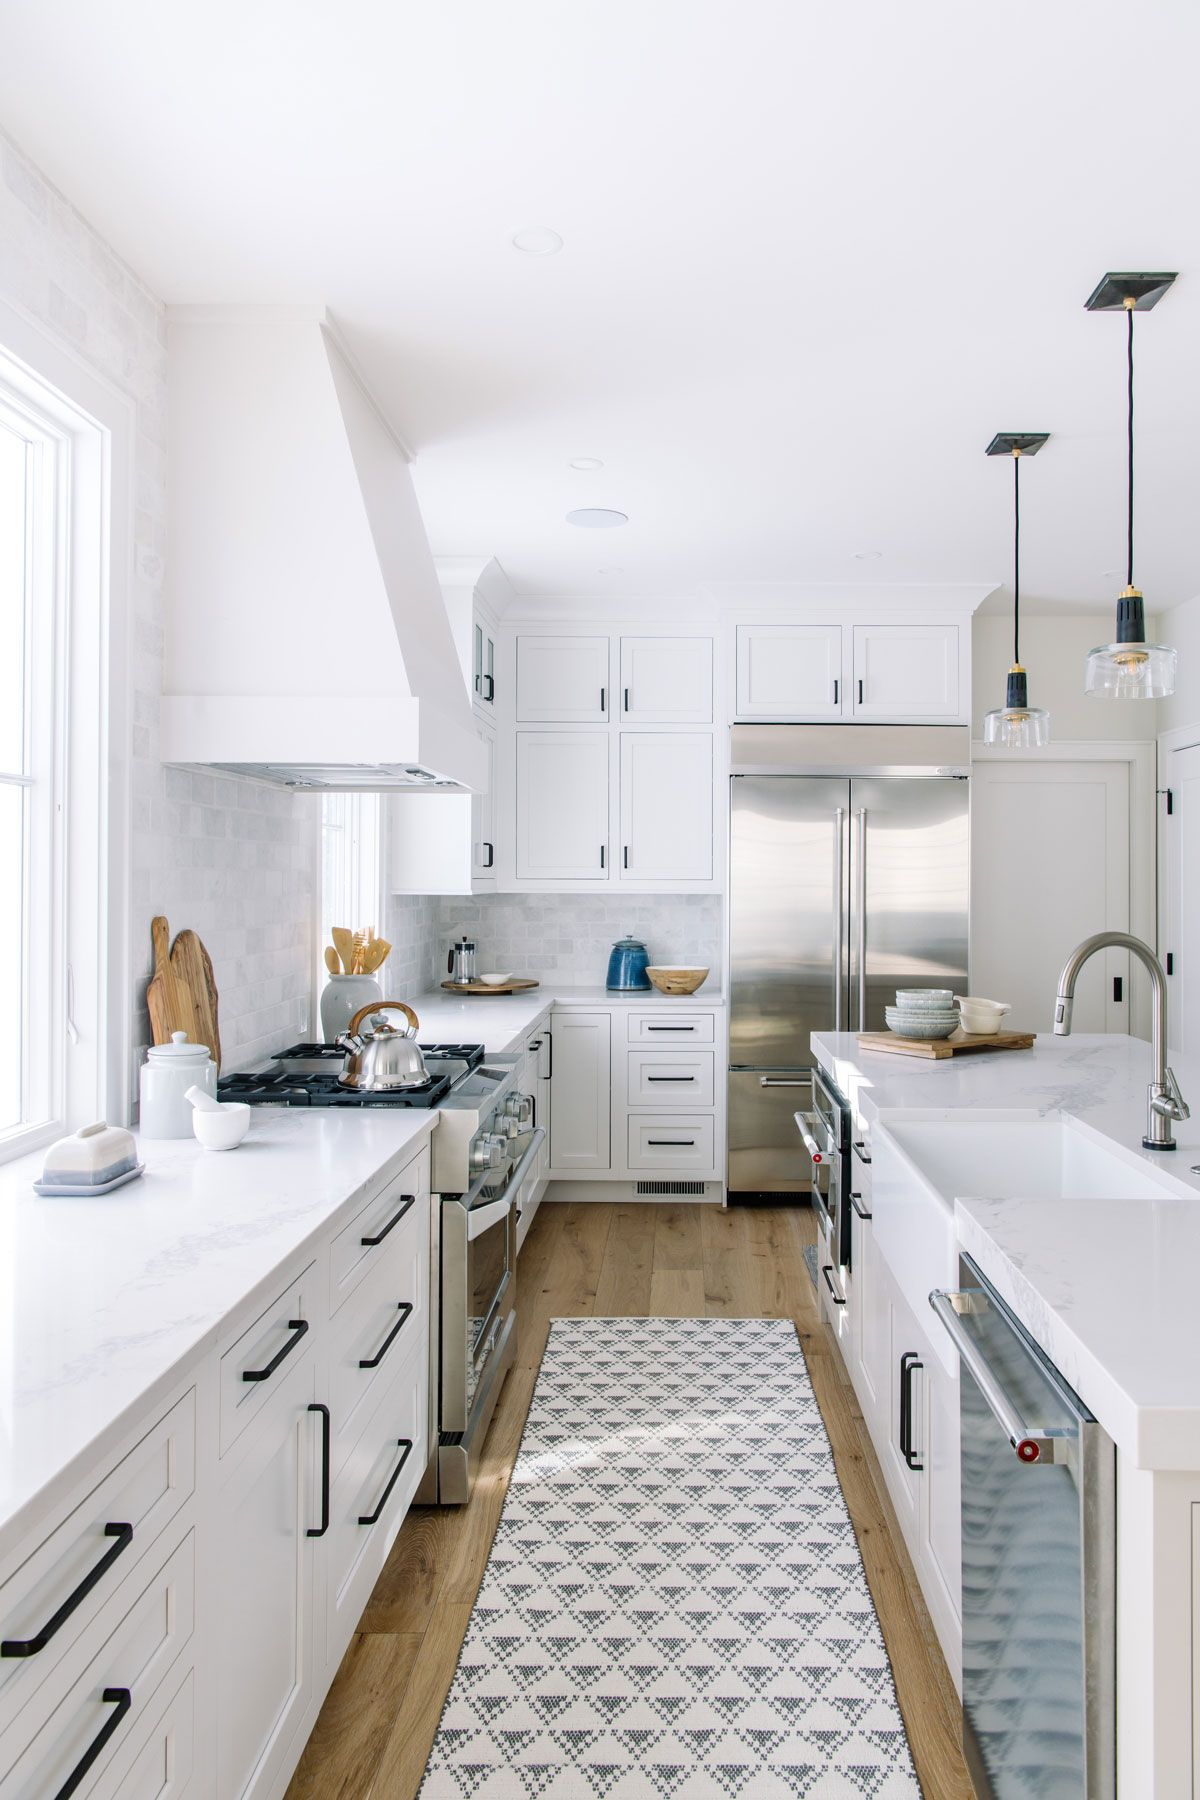 Before And After Timberline Project Reveal Interior Designer Des Moines Jillian Lare In 2020 Kitchen Remodel Modern Kitchen Remodel Full Kitchen Remodel